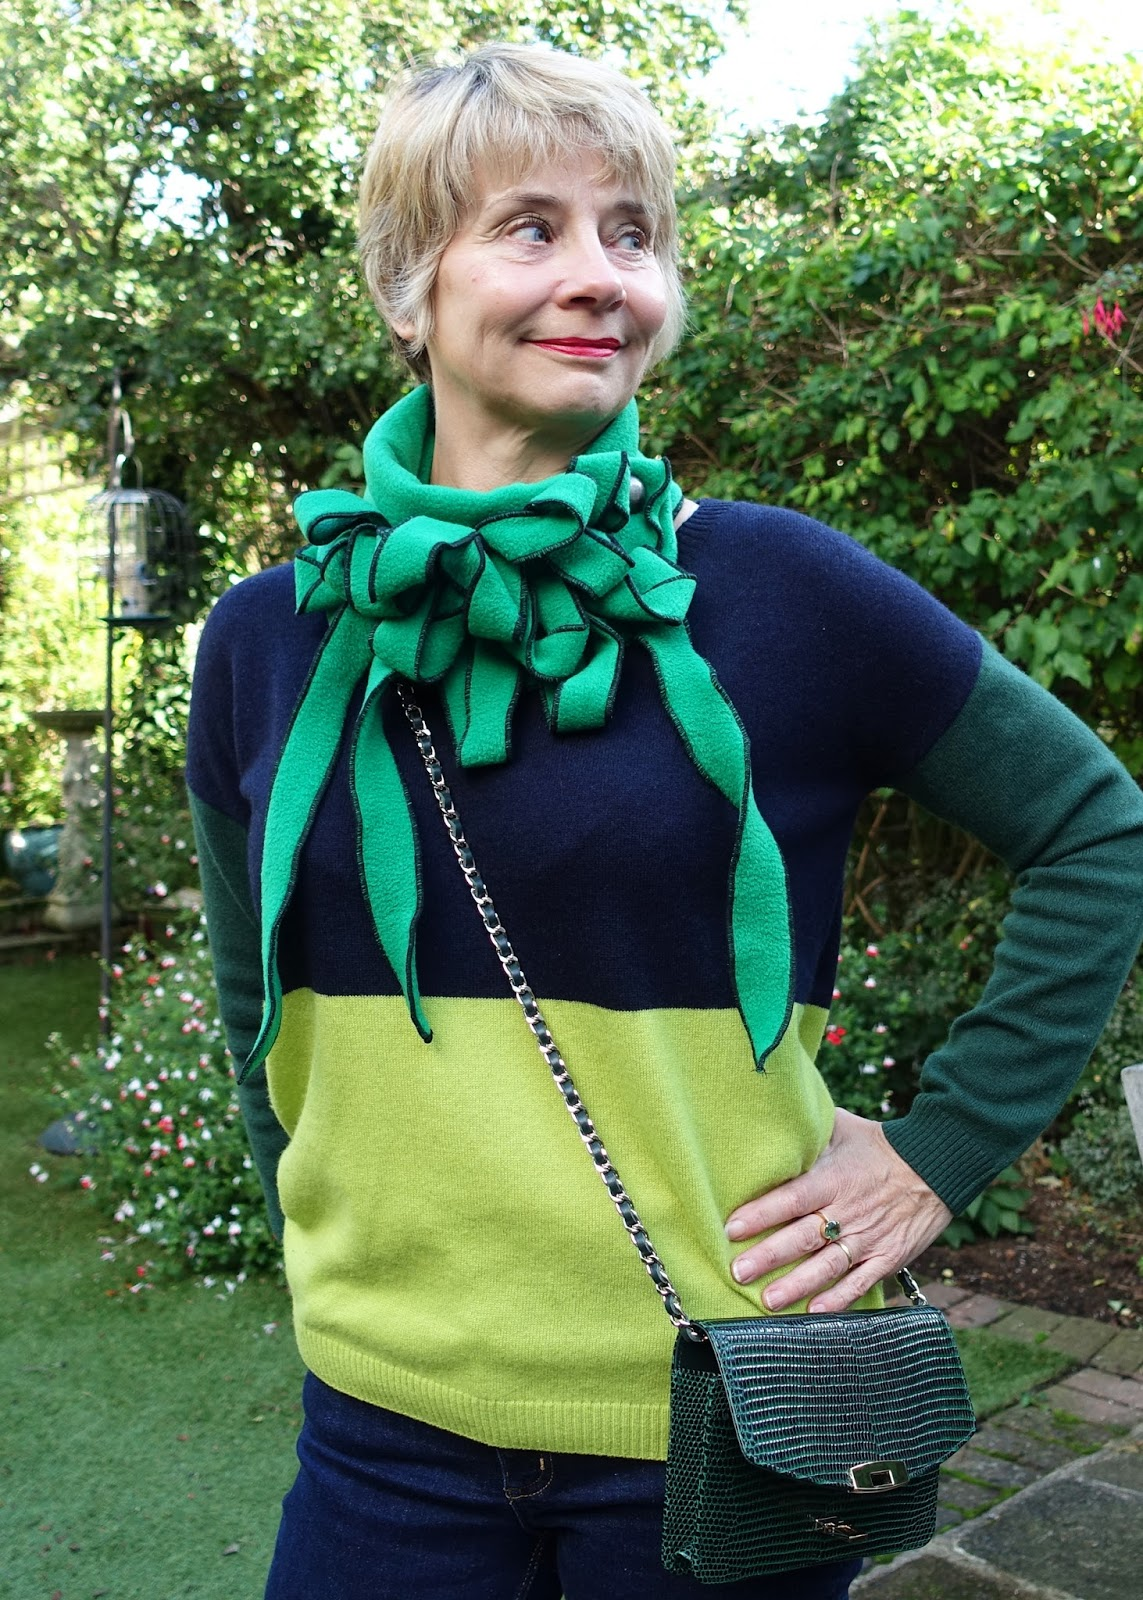 Image showing a striking Rew scarf, the neckwear fastened with one button, in green